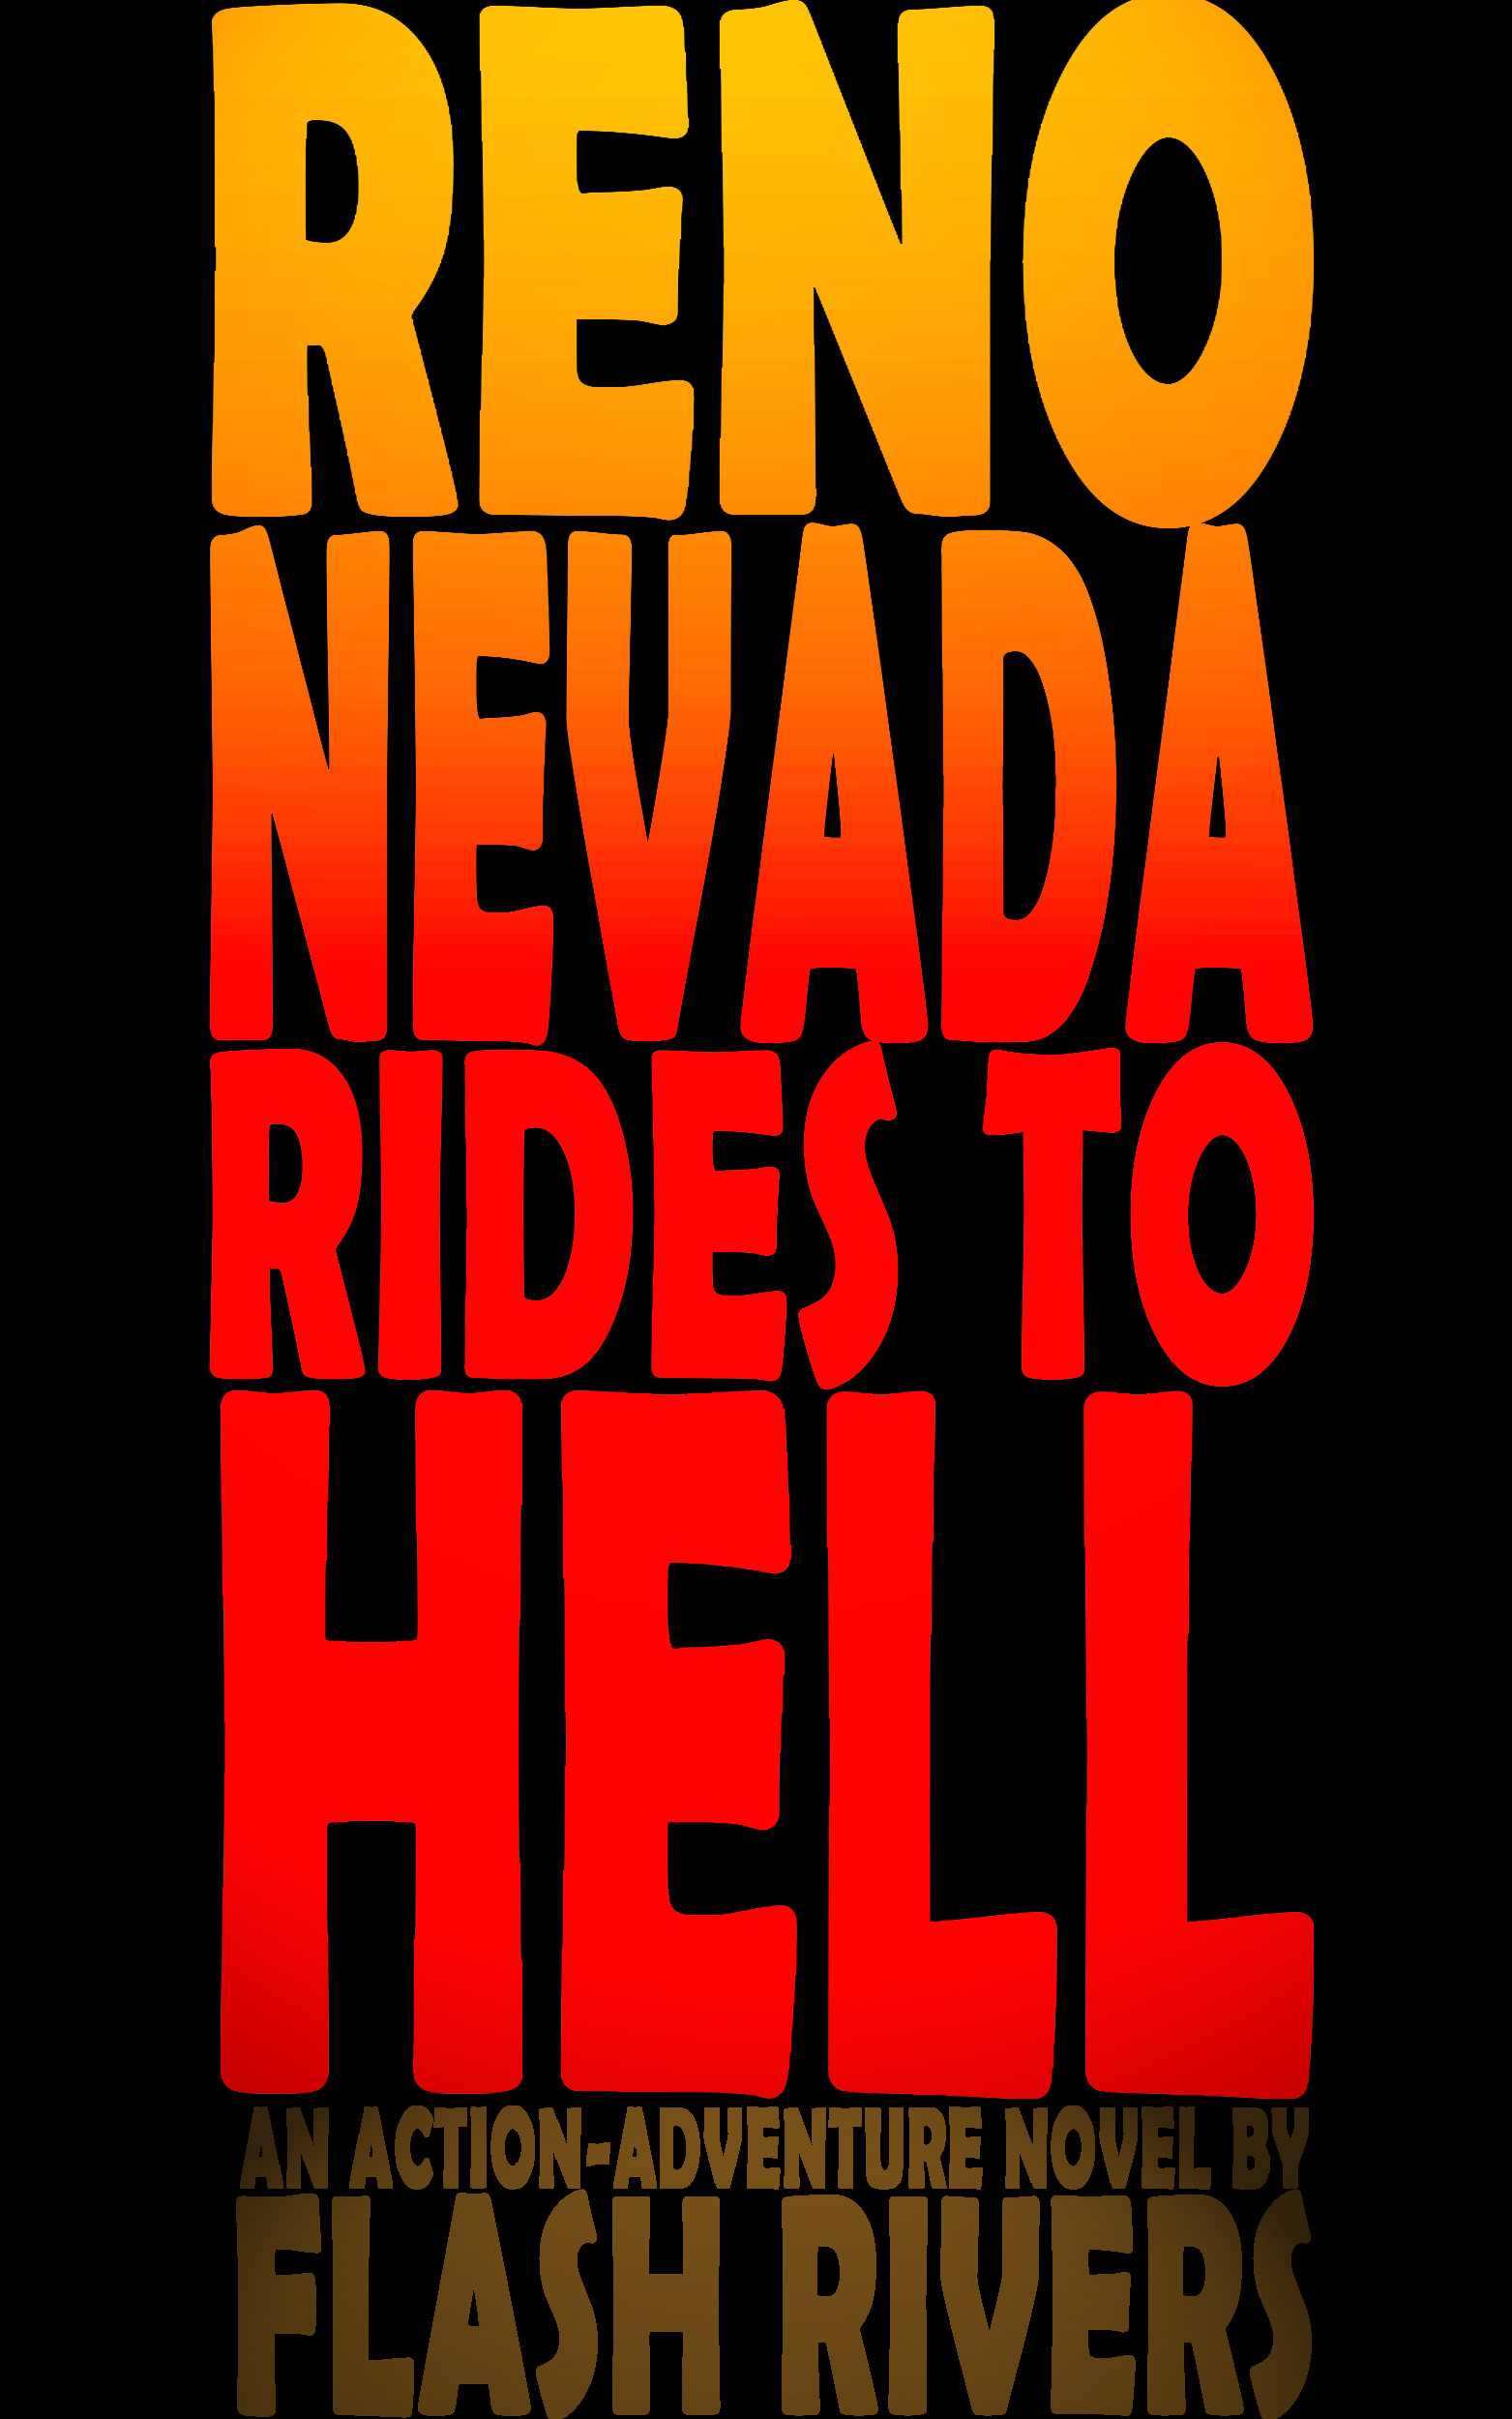 Reno Nevada Rides To Hell